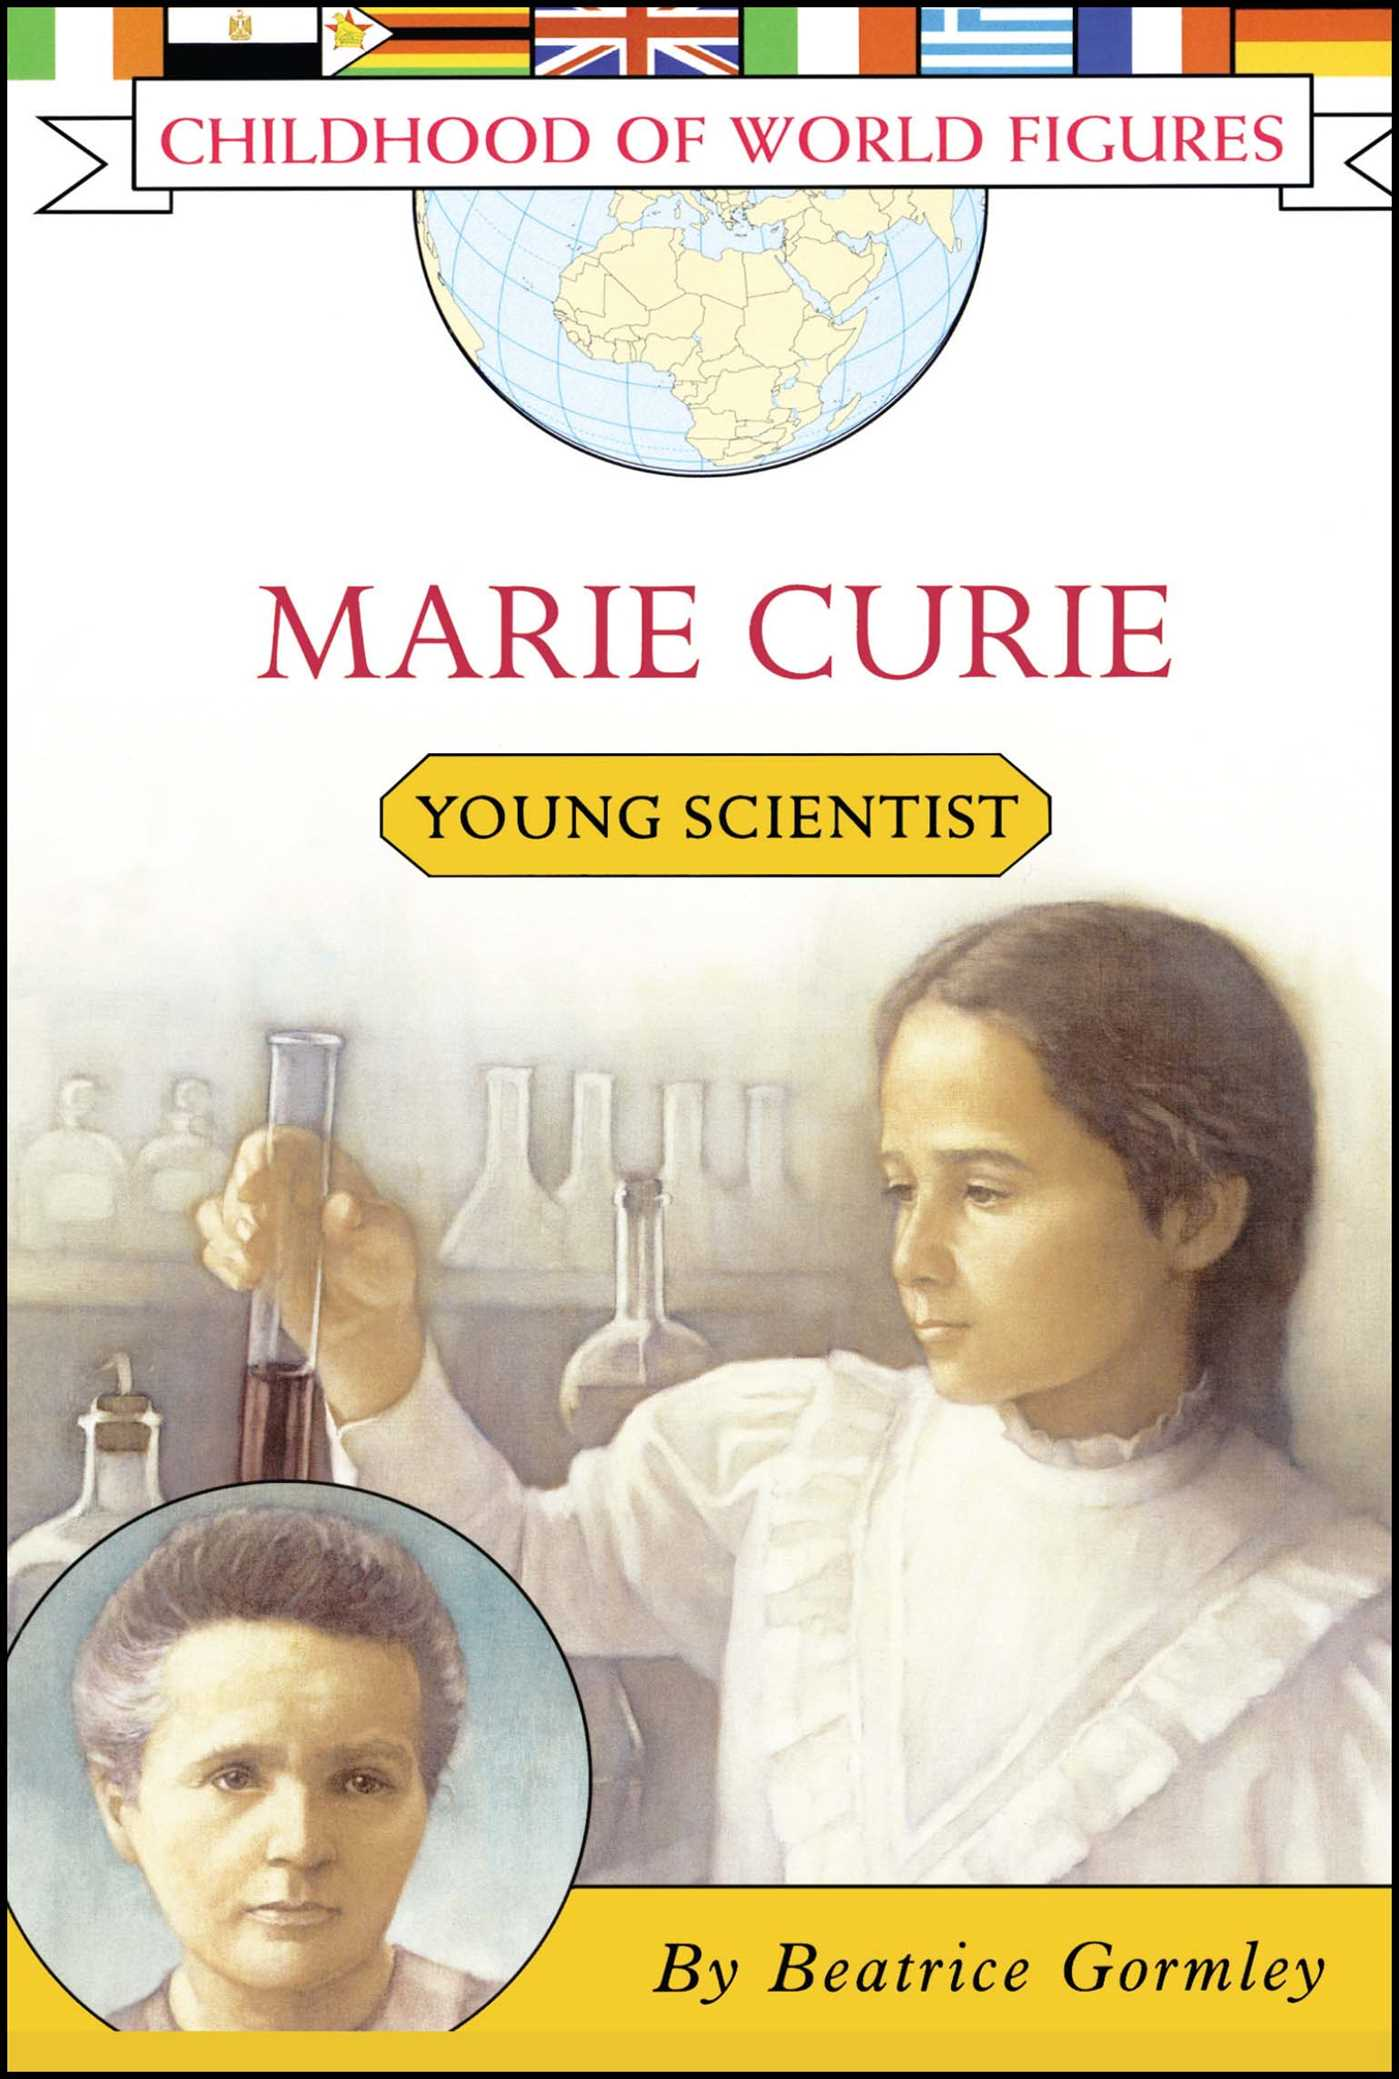 Marie curie 9781416915454 hr